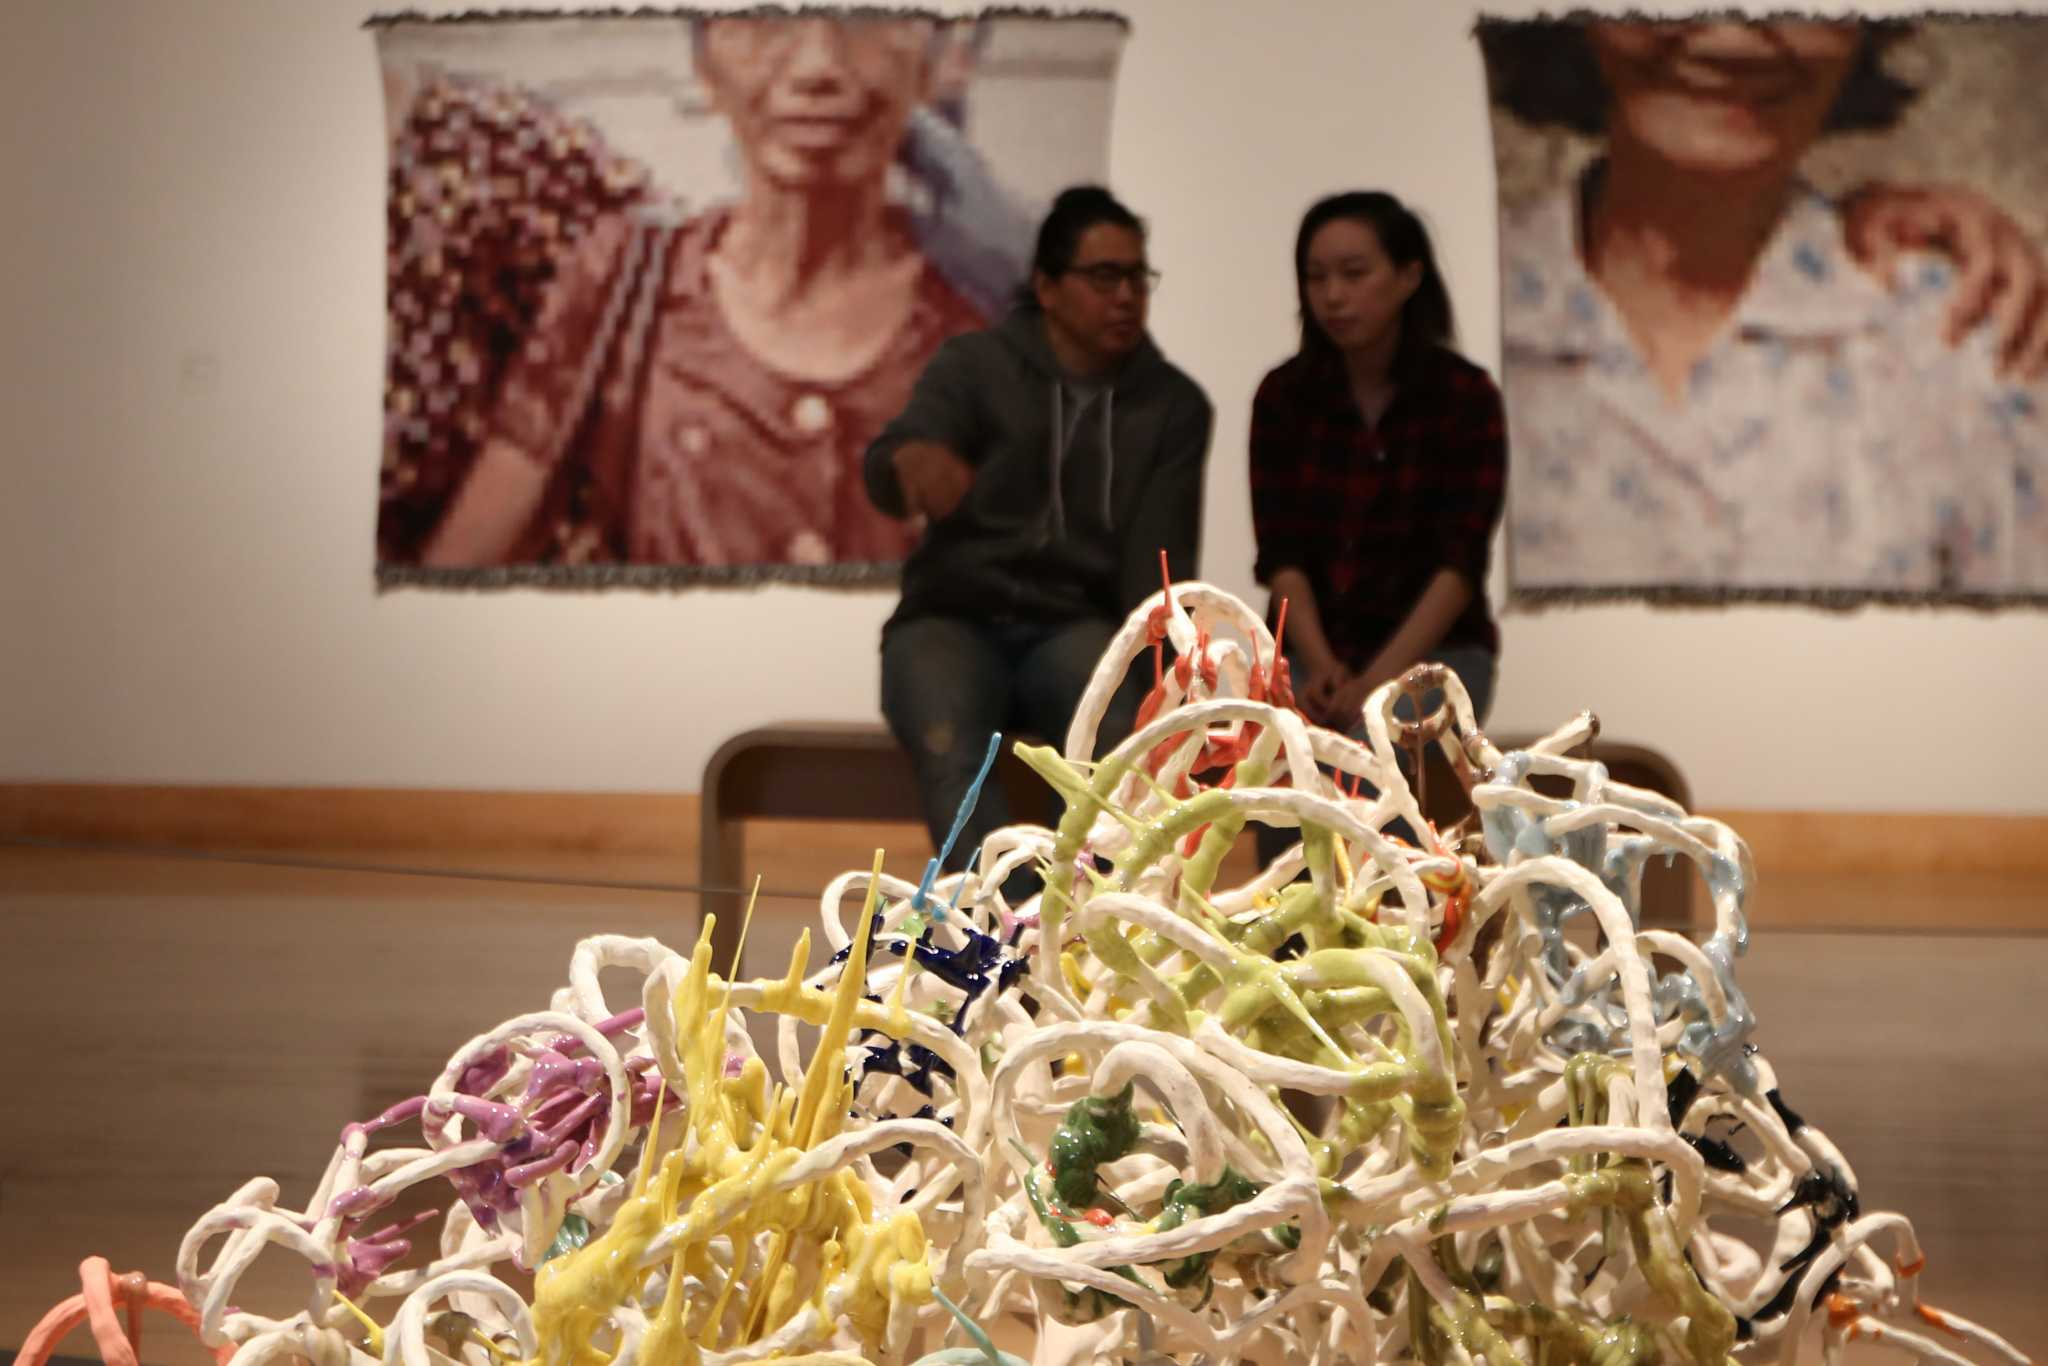 Attendees discuss a sculpture by Shannon Abac at the campus reception of the 2016 MFA Thesis Exhibition in the SF State Fine Arts Gallery on April 21, 2016. (Kelsey Lannin / Xpress